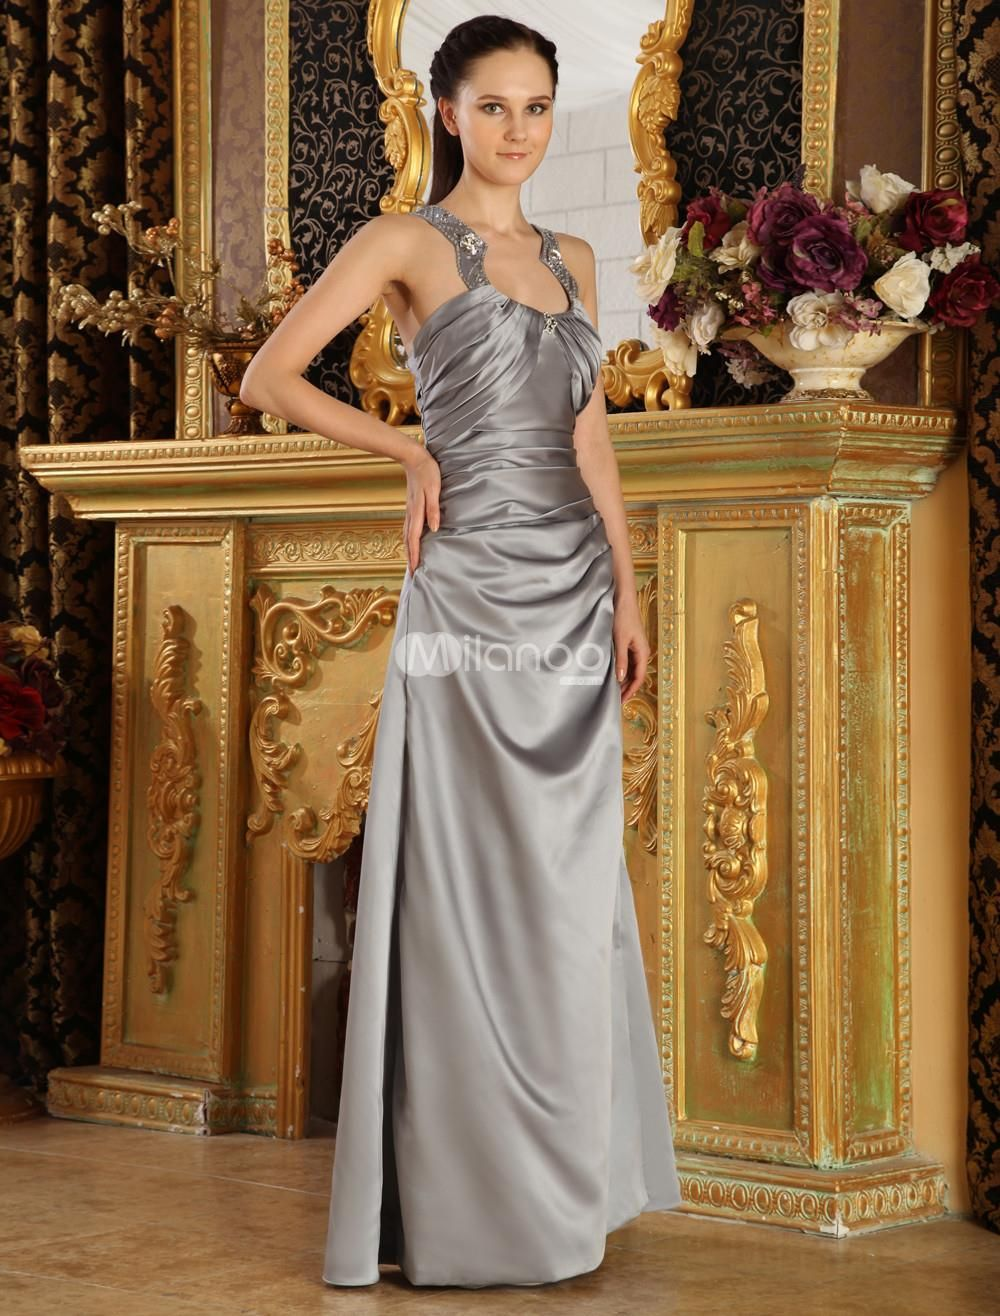 Silver Jewel Neck A-line Beading Satin Evening Dress. Sheath-style dresses are always a great choice. They look great, they feel great and are quite fashionable as well. This one is made from a lovely satin fabric and features a draped cowl texture throughout the design. The st.. . See More A-line at http://www.ourgreatshop.com/A-line-C966.aspx